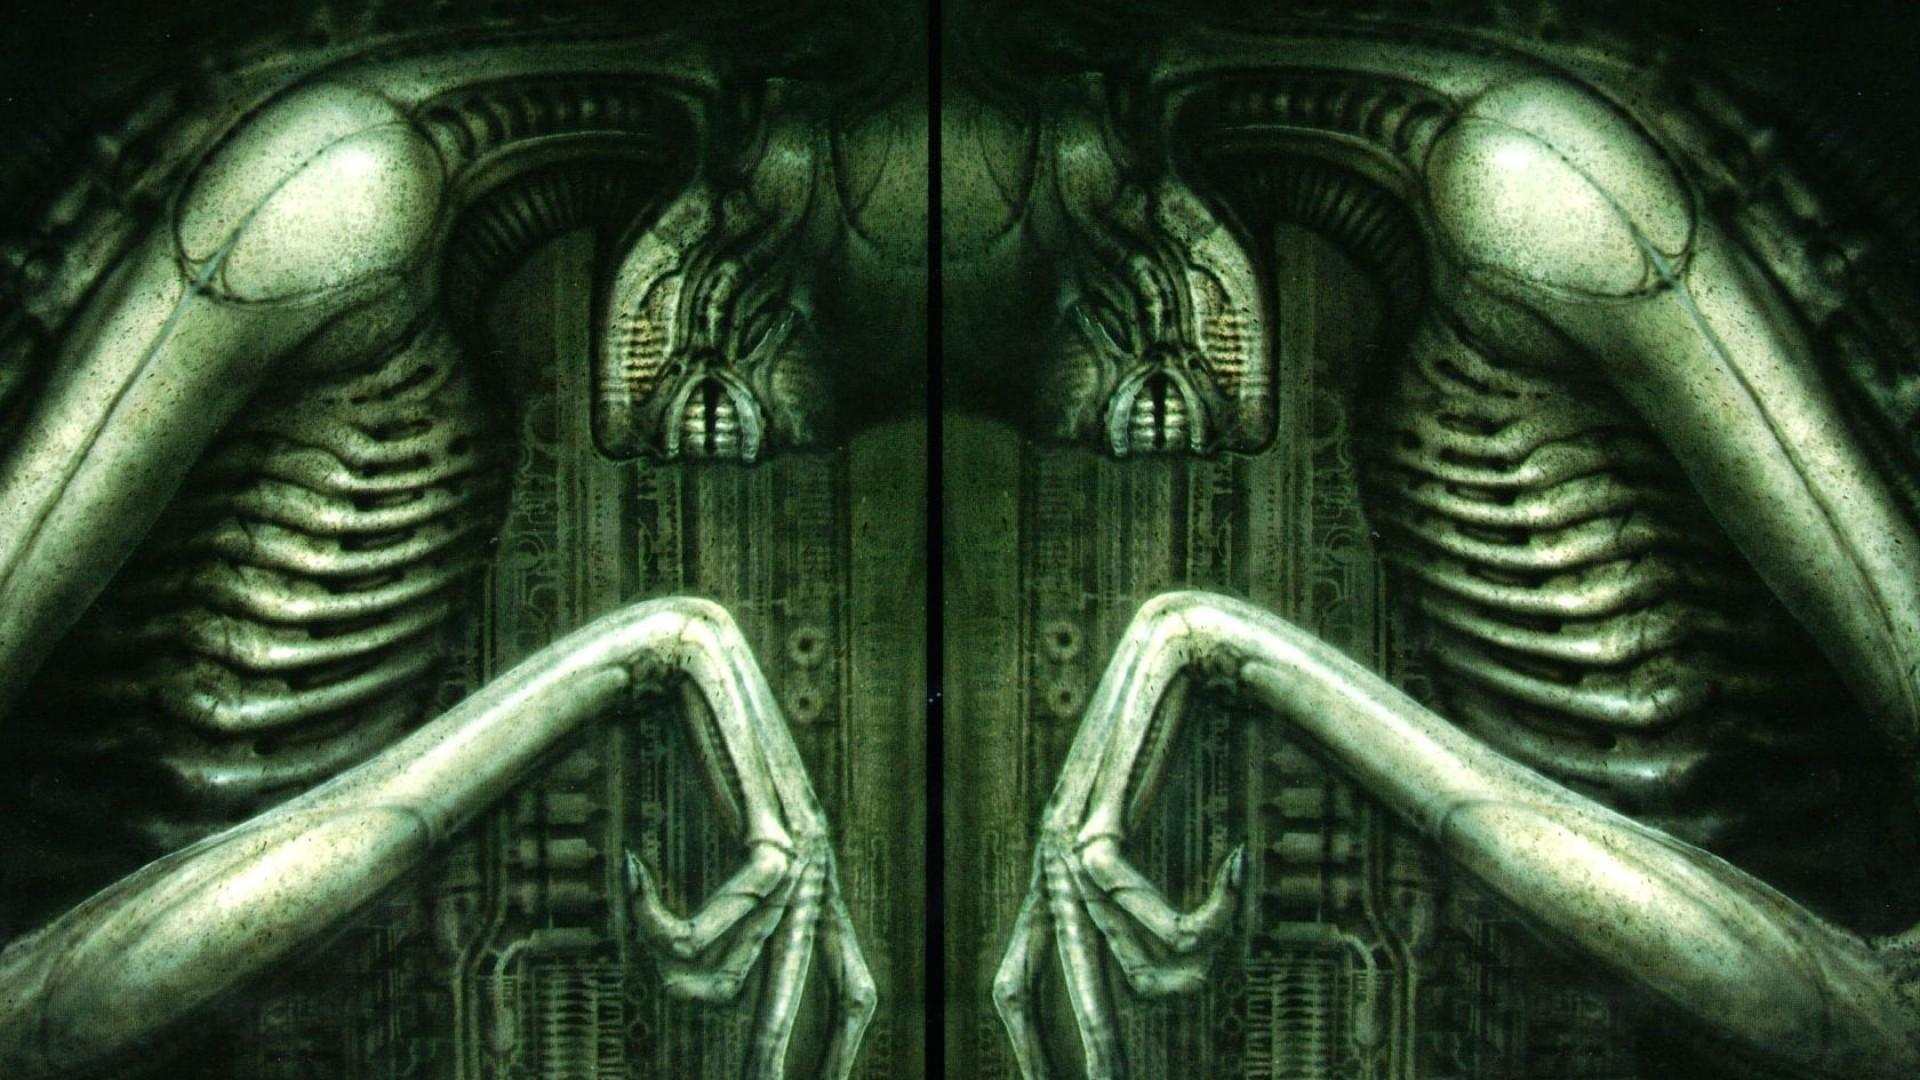 HR Giger Wallpaper 1920x1080  WallpaperSafari